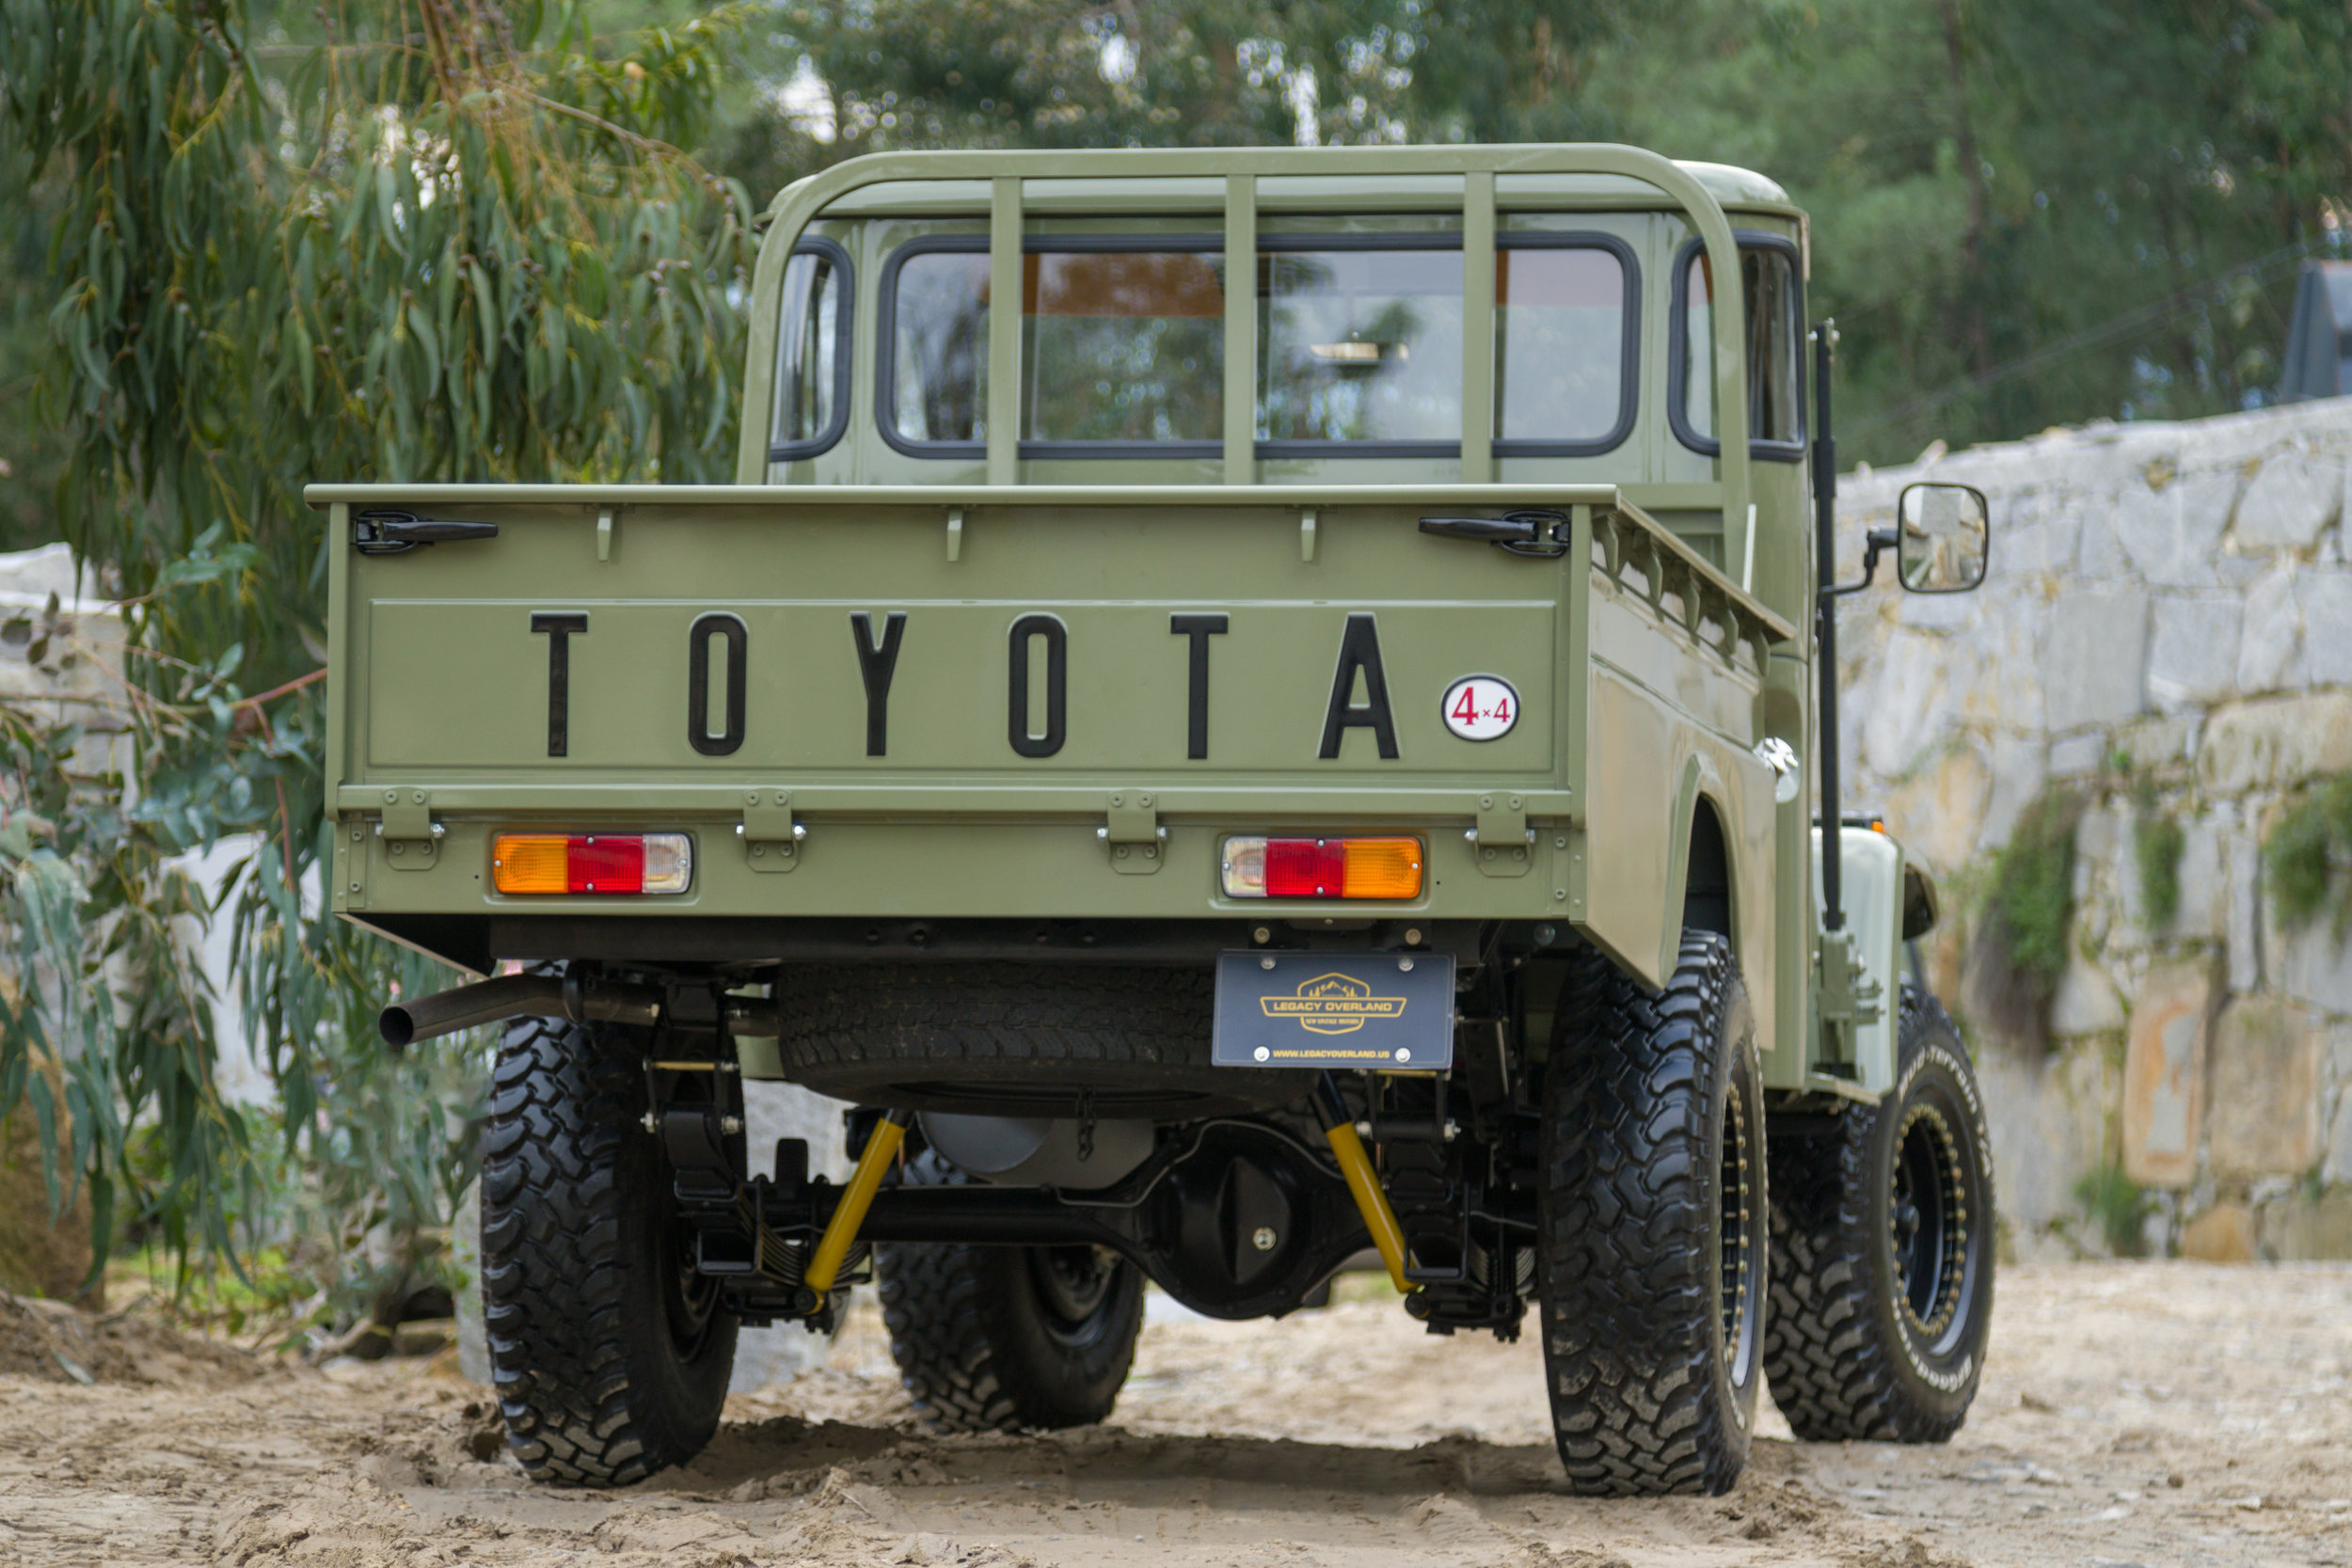 LegacyOverland_1978_ToyotaLandCruiser_HJ45_pick-up_quarry_66.jpg